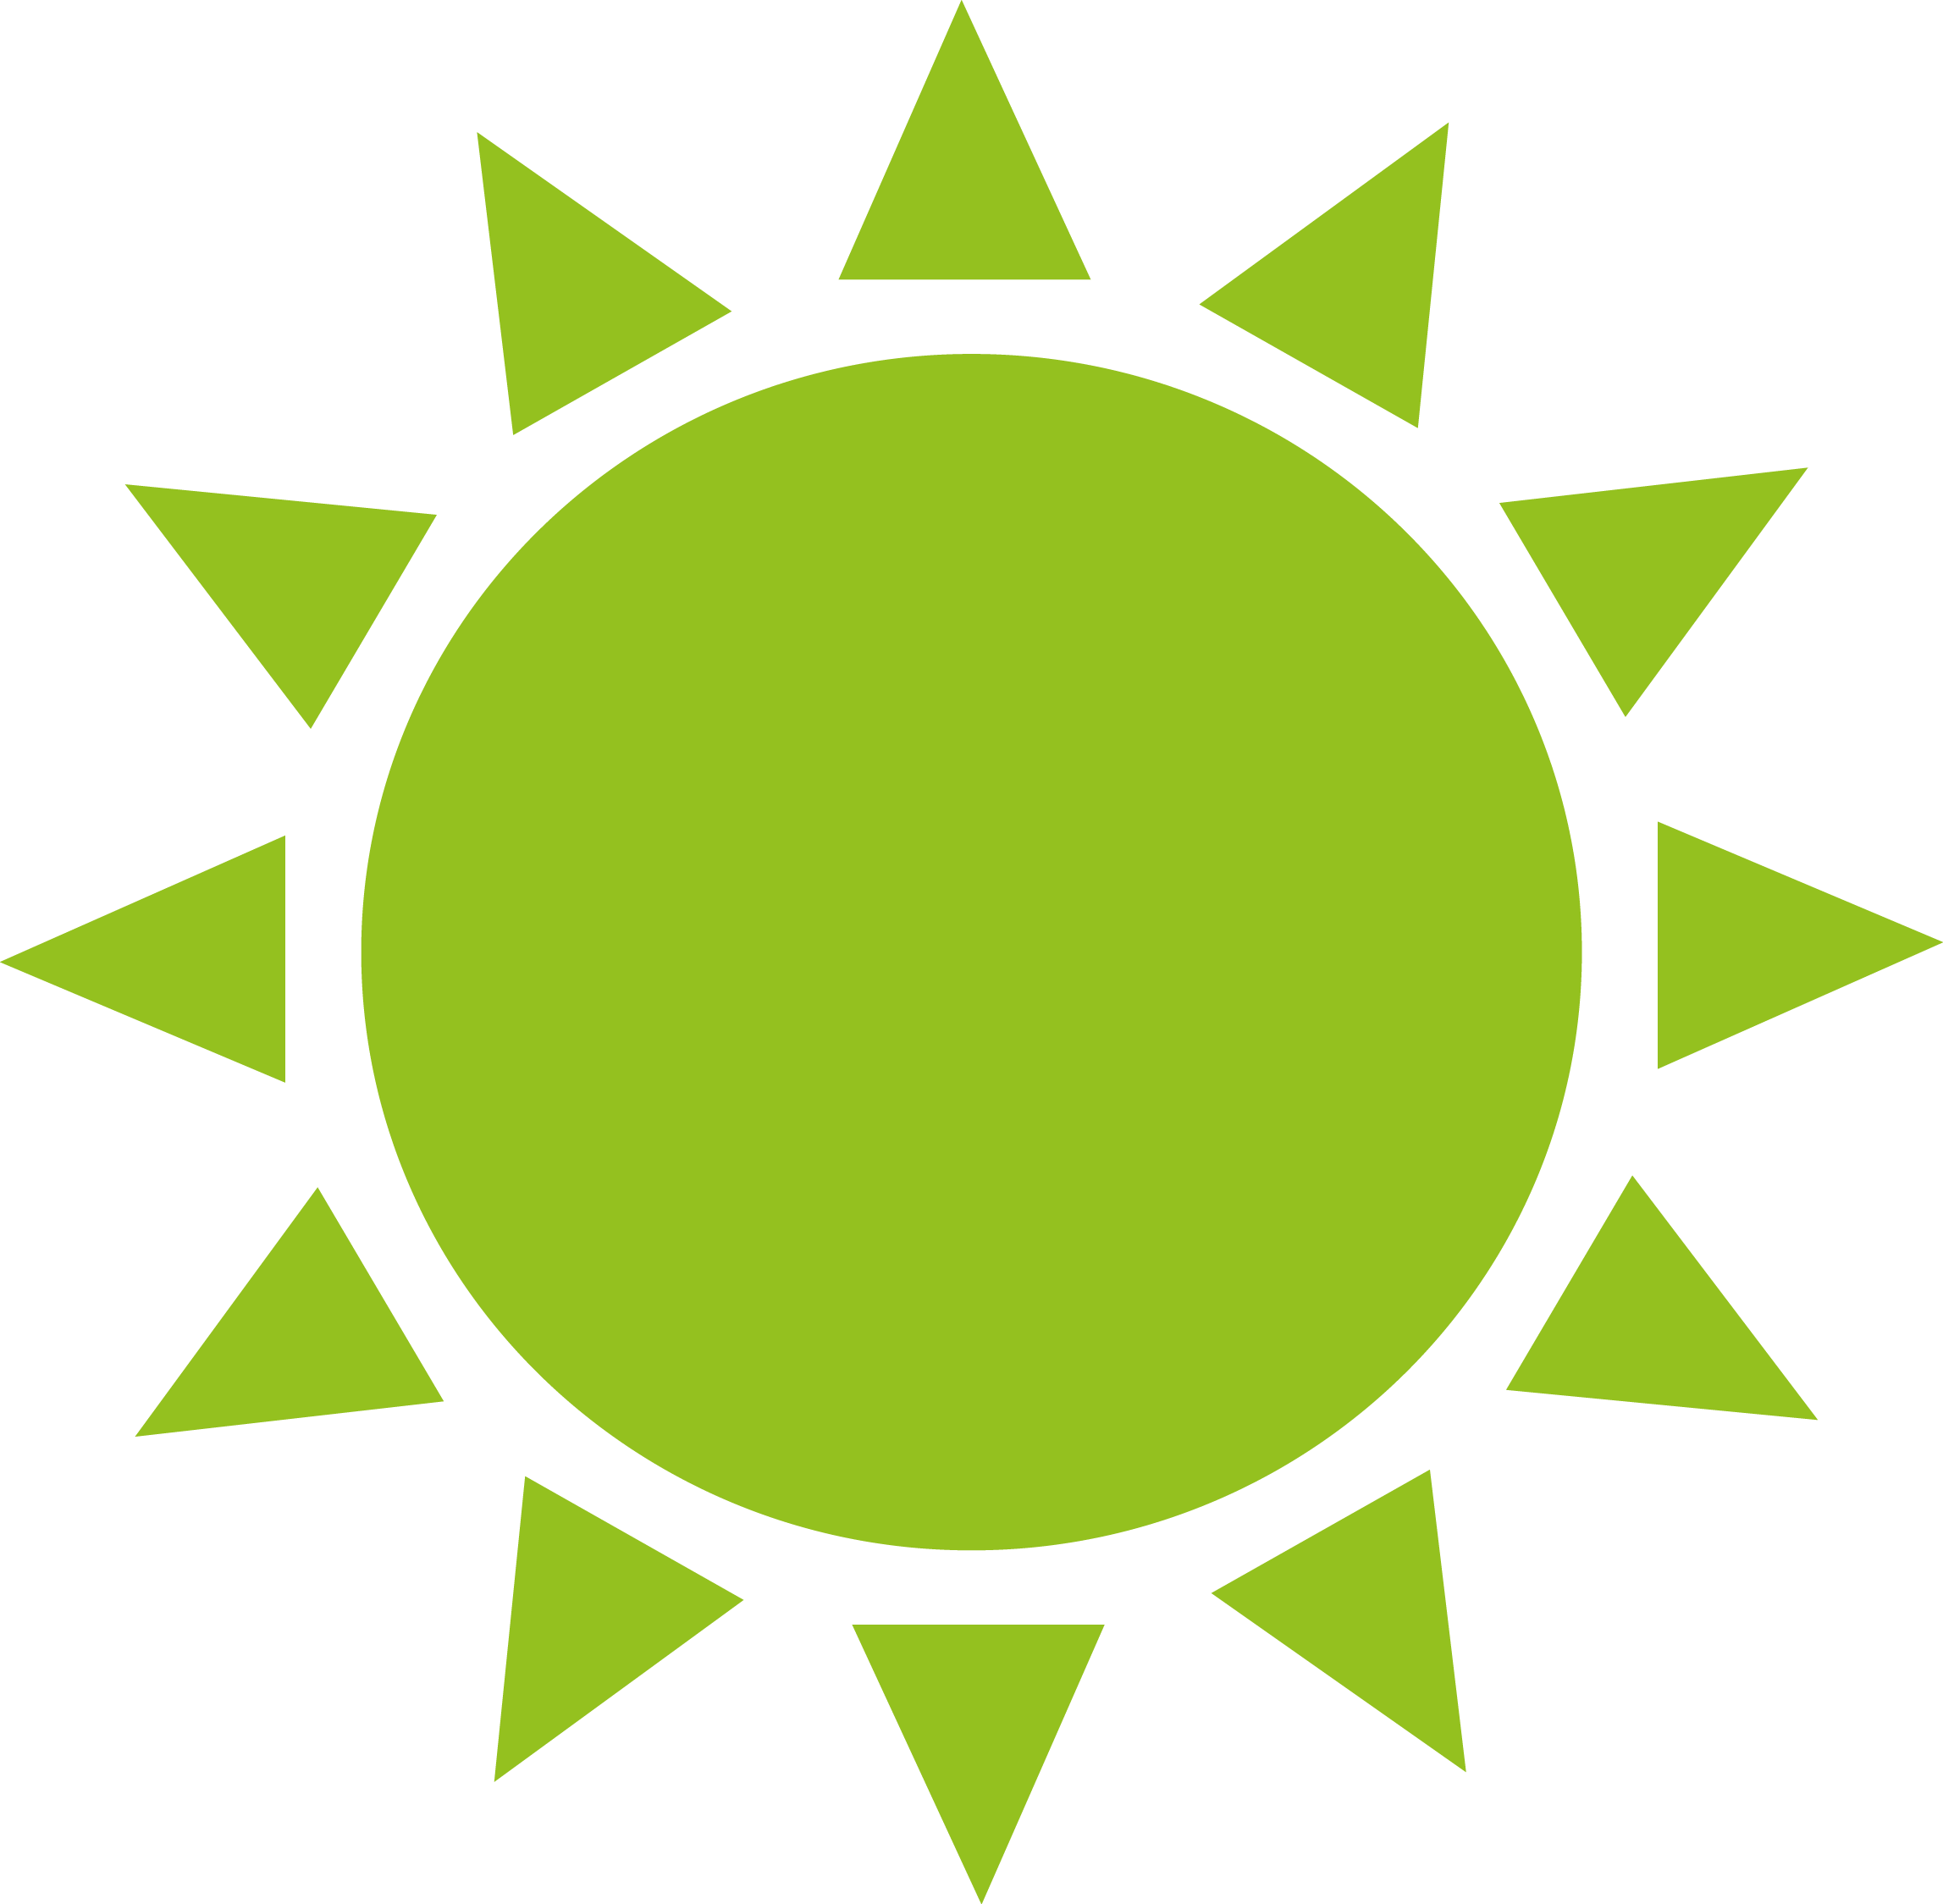 Green sun clipart clip art freeuse Call for experts on climate action, environment & resources ... clip art freeuse